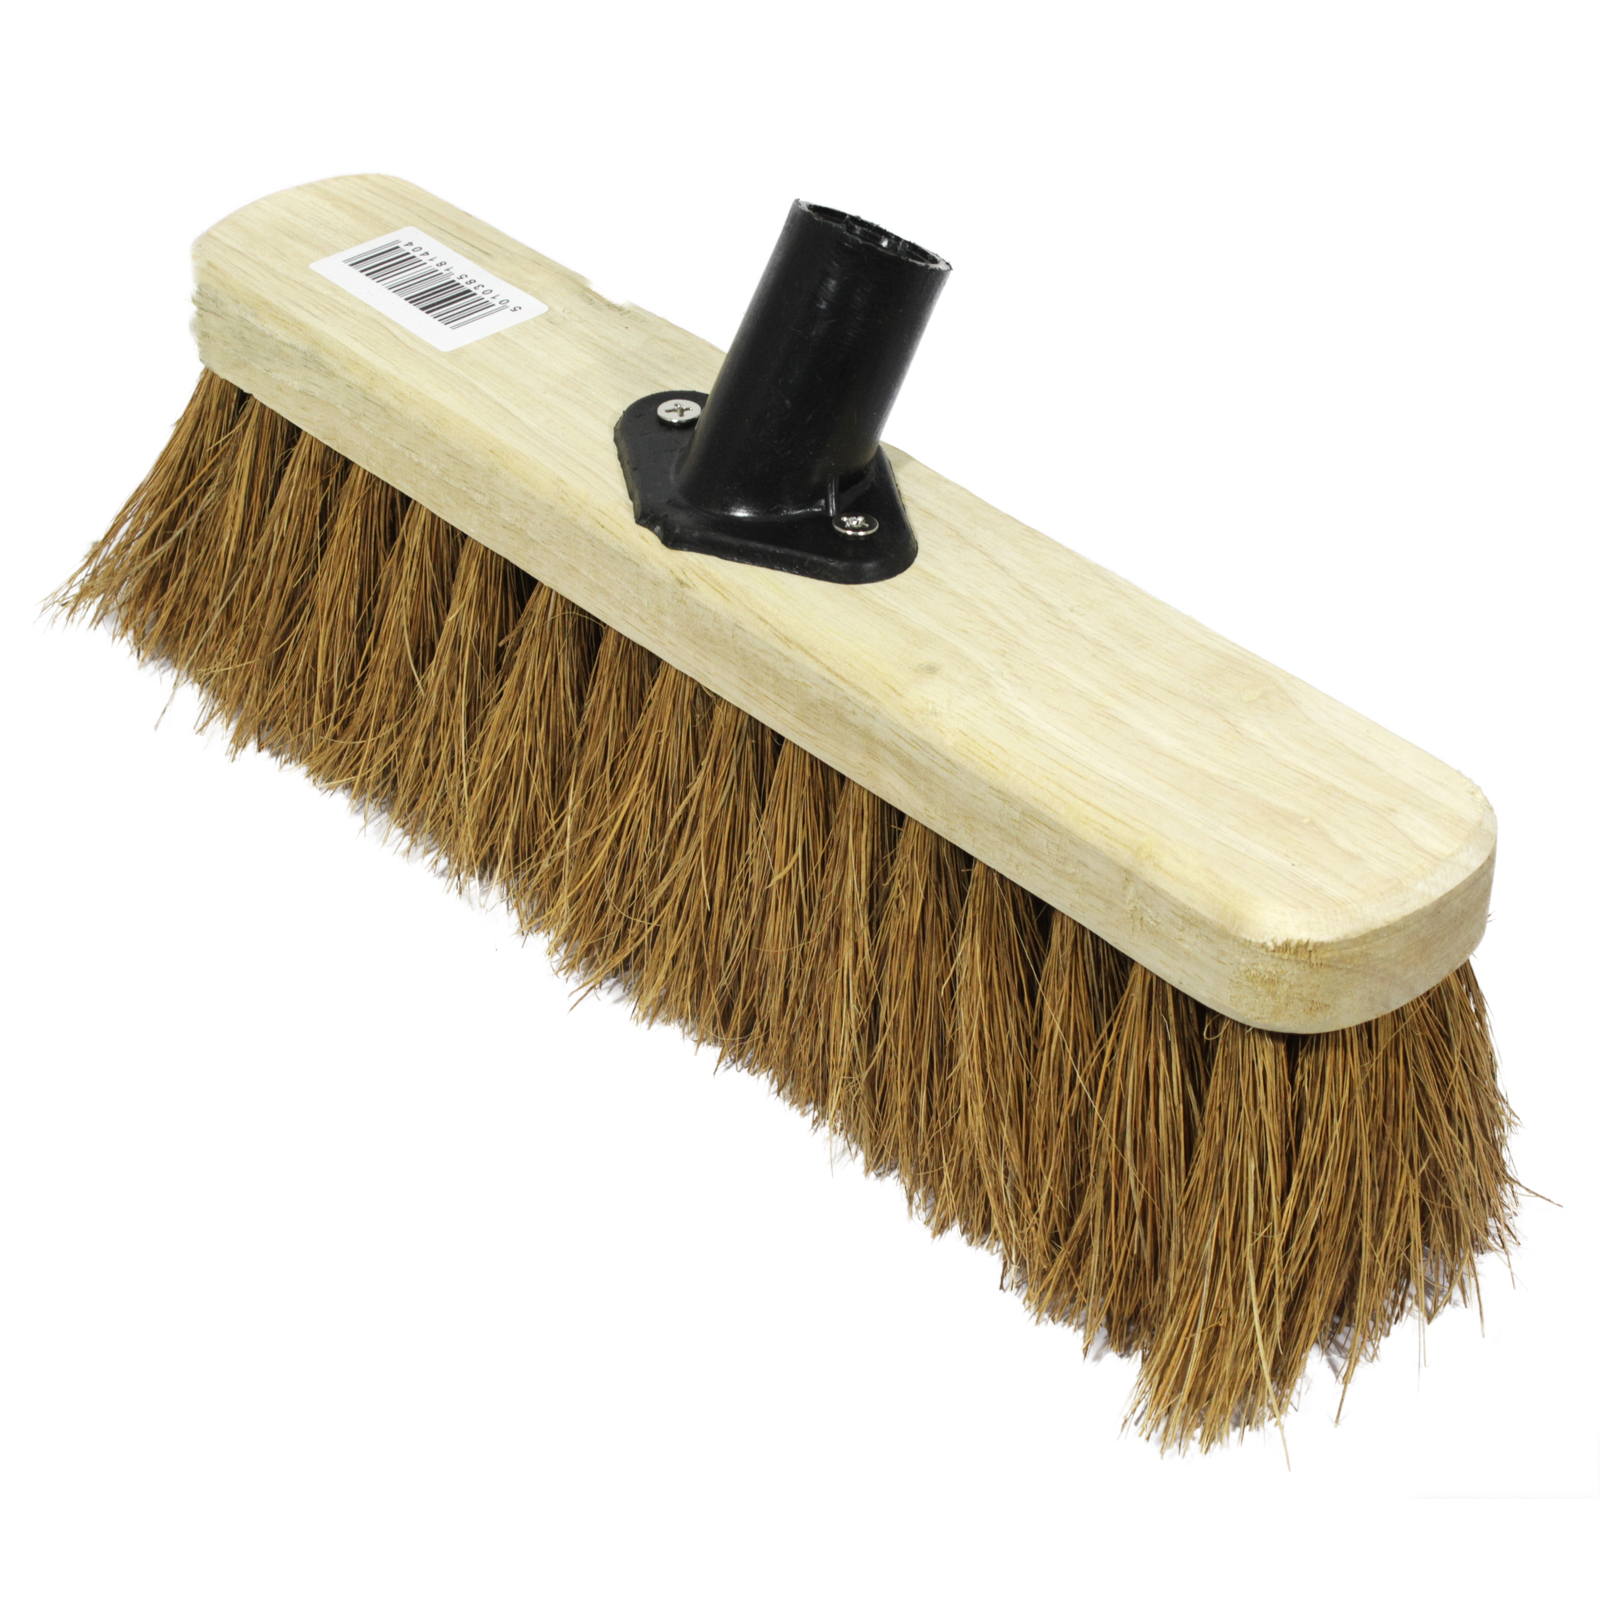 WOOD BROOM HEAD 12